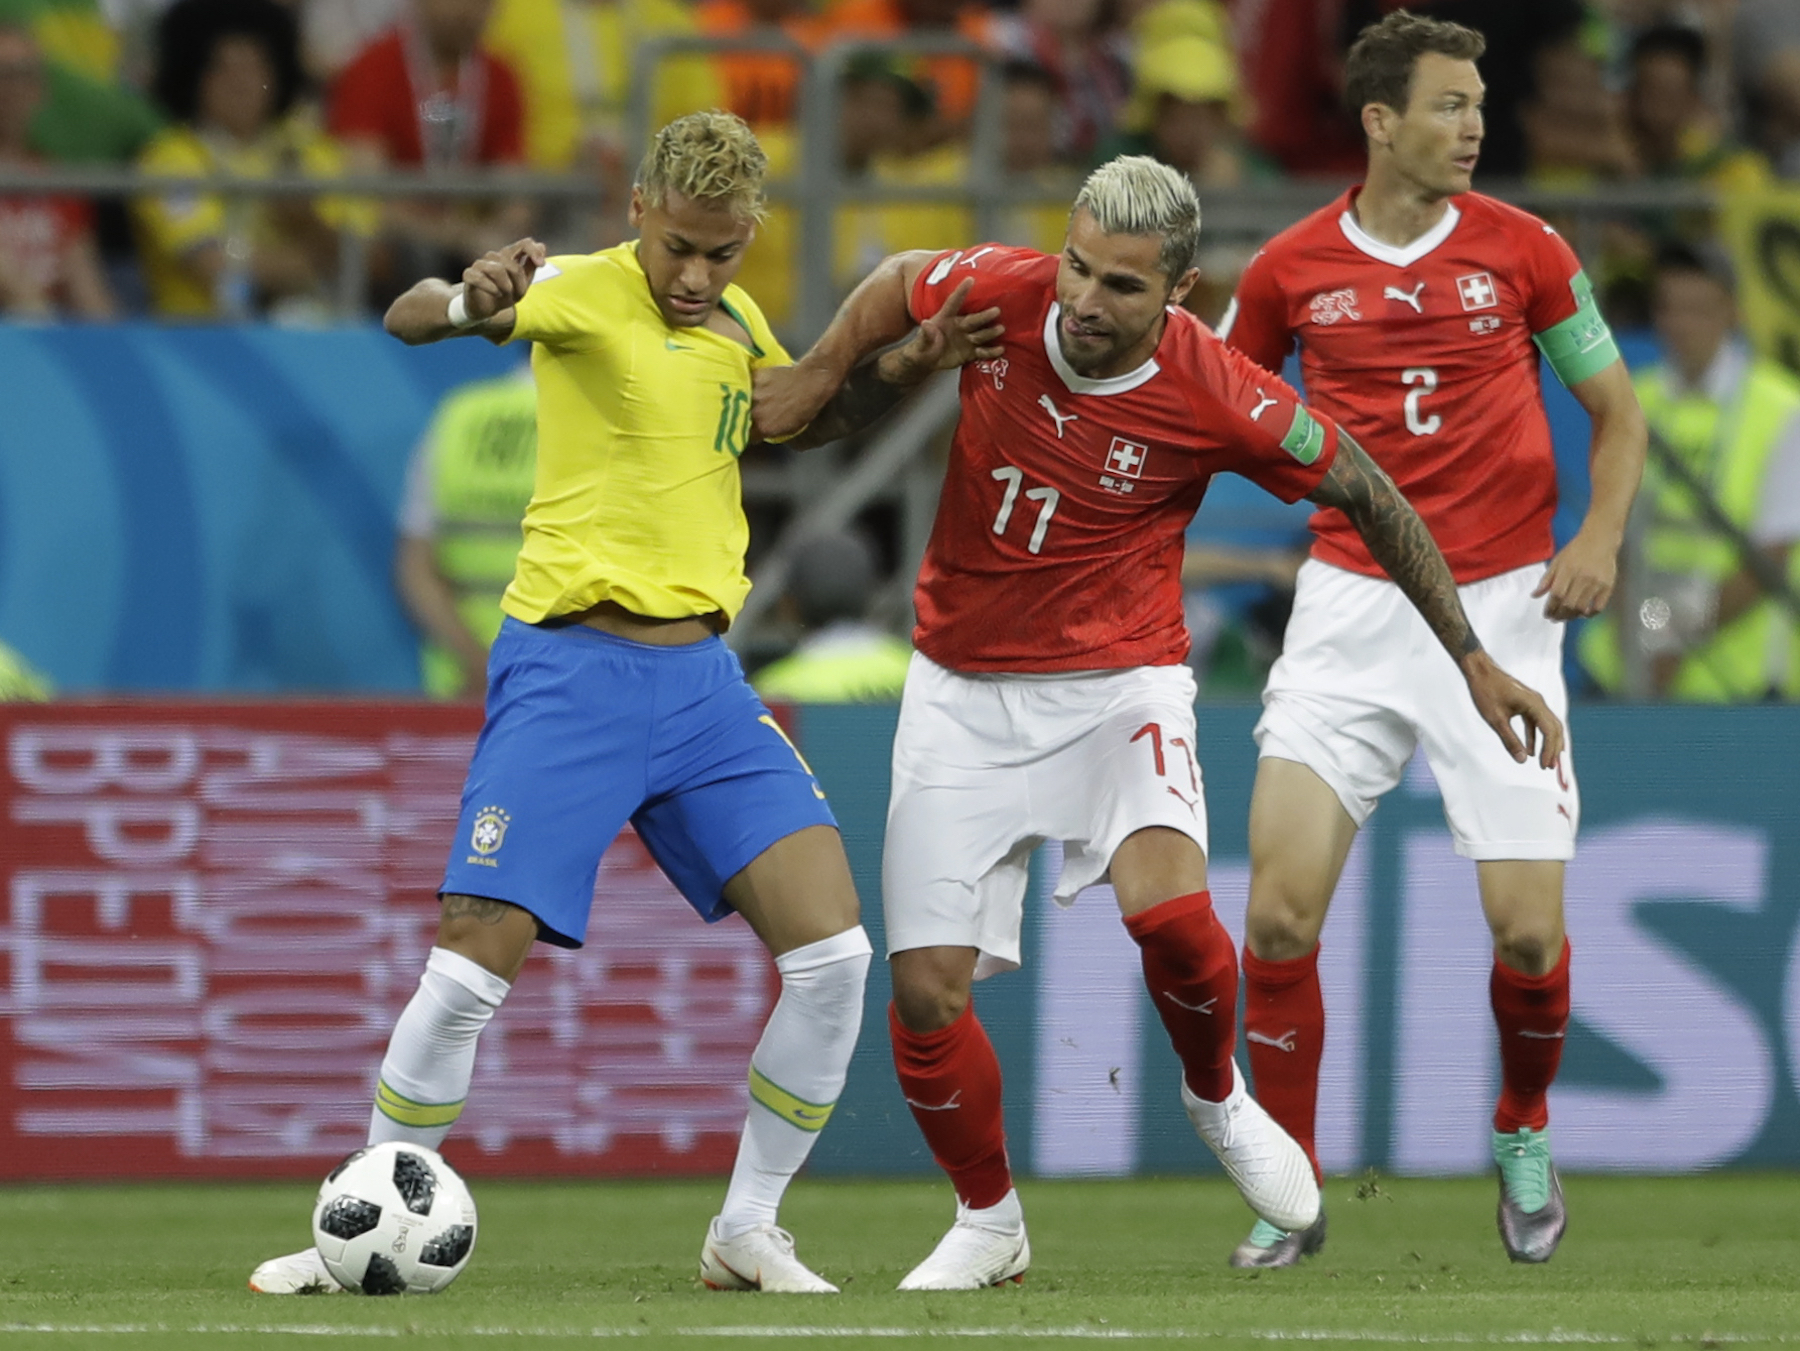 <div class='meta'><div class='origin-logo' data-origin='AP'></div><span class='caption-text' data-credit='AP Photo/Andre Penner'>Brazil's Neymar, left, is challenged for the ball by Switzerland's Valon Behrami during the group E match between Brazil and Switzerland at the 2018 soccer World Cup.</span></div>